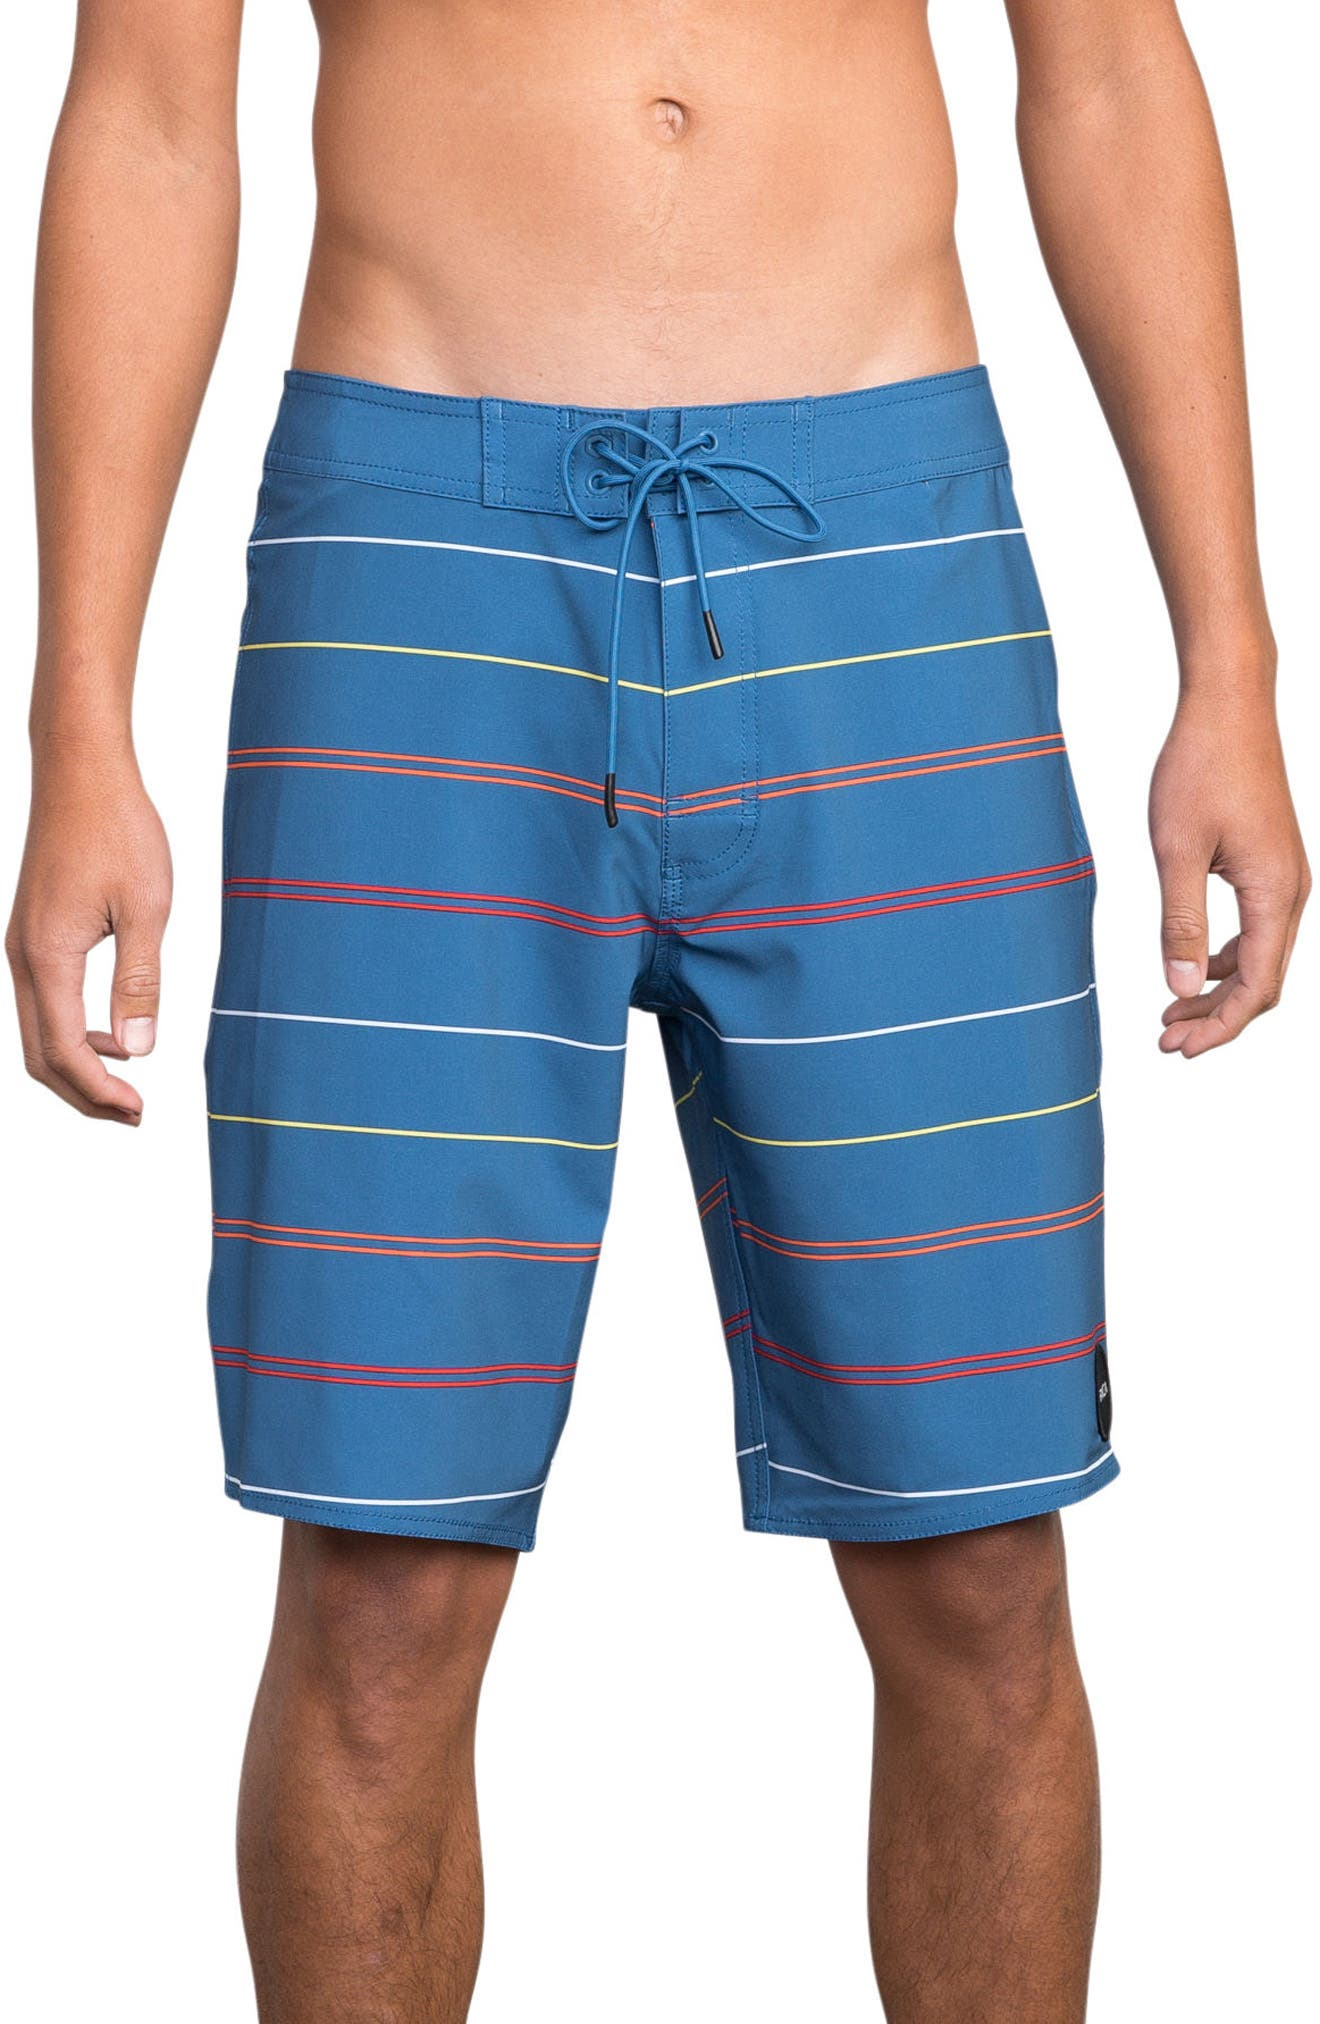 Middle Swim Trunks,                             Main thumbnail 1, color,                             COBALT